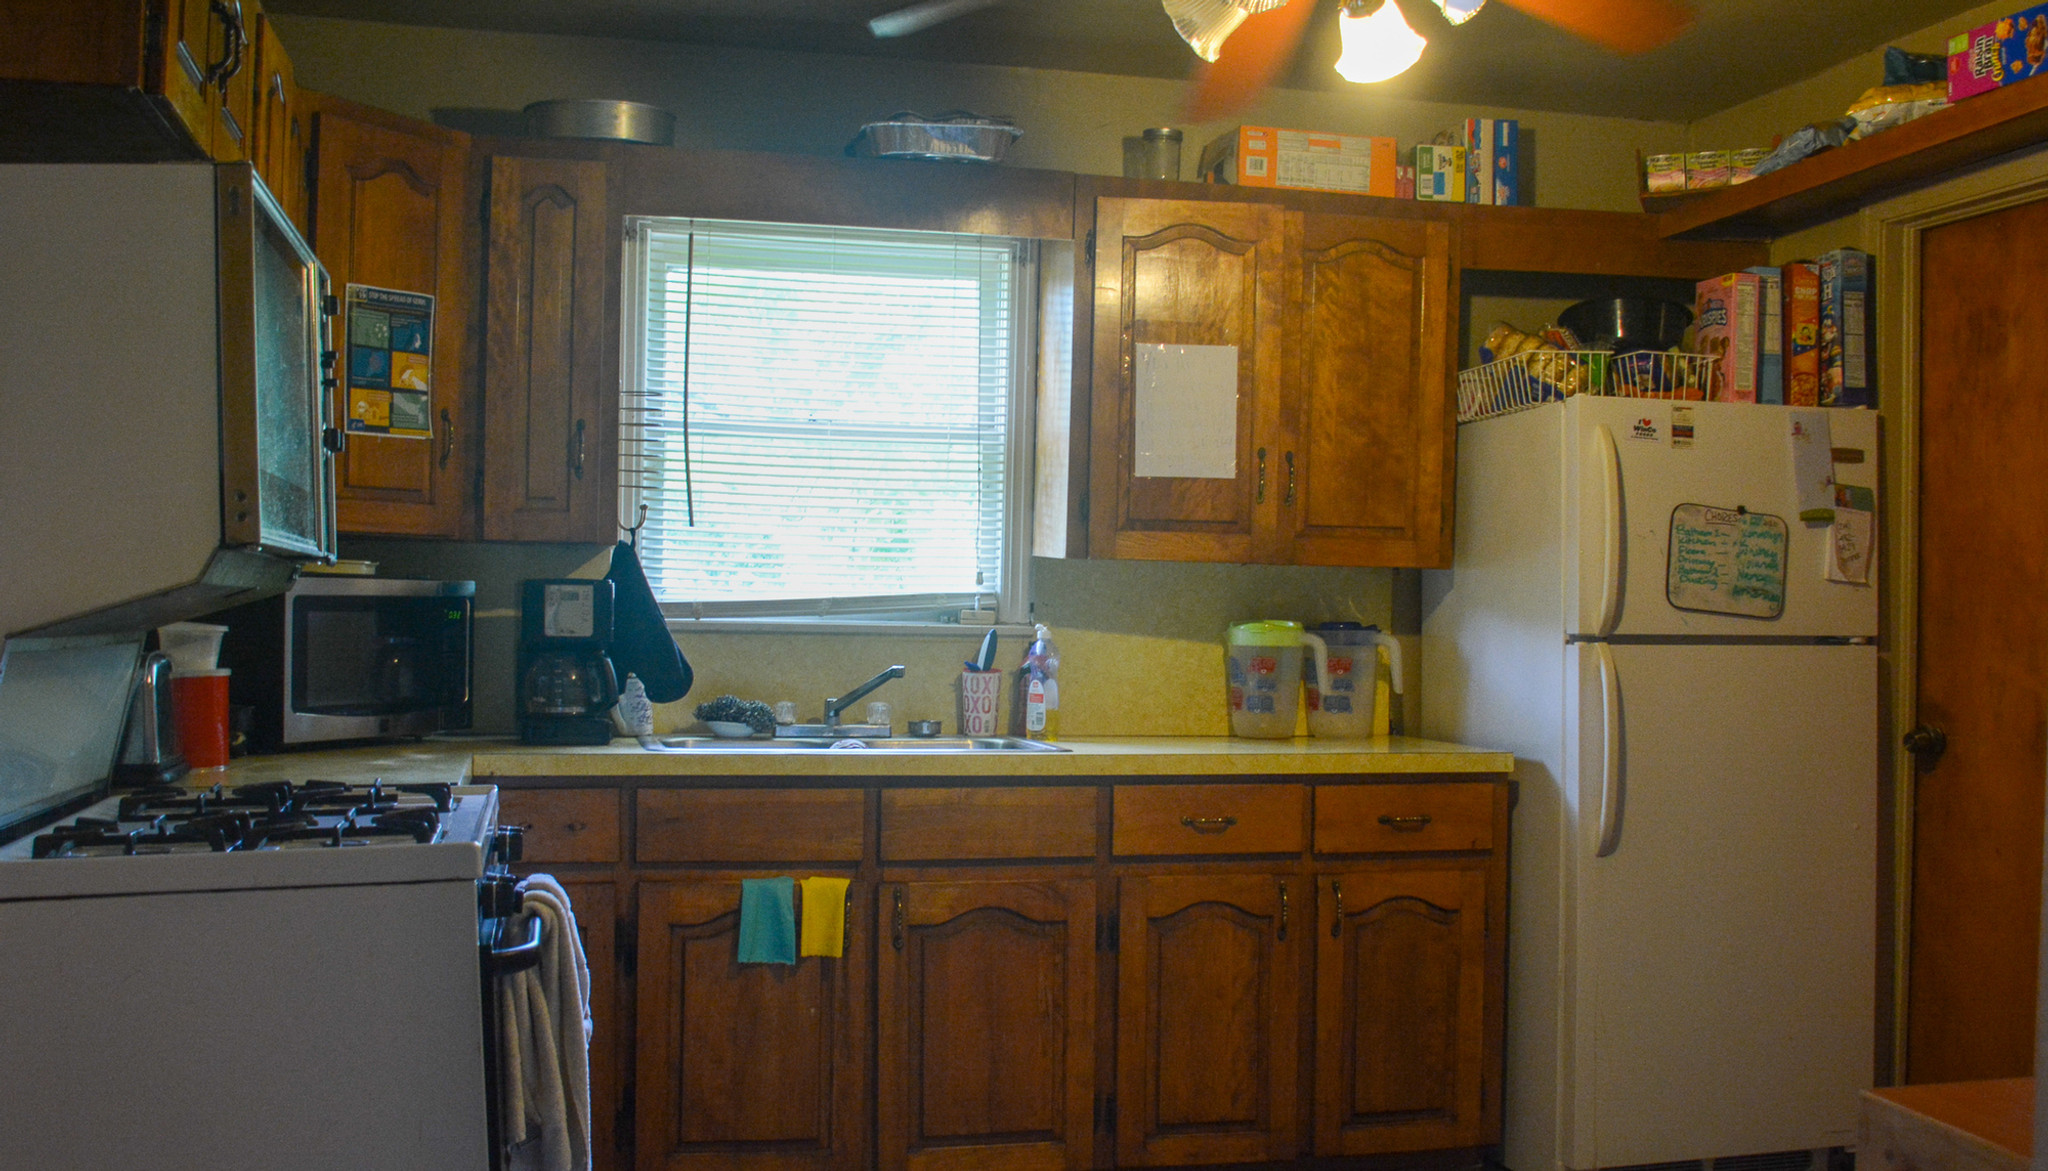 The kitchen in the Women's Adult Rehabilitation Ministry Home (WARM Home)